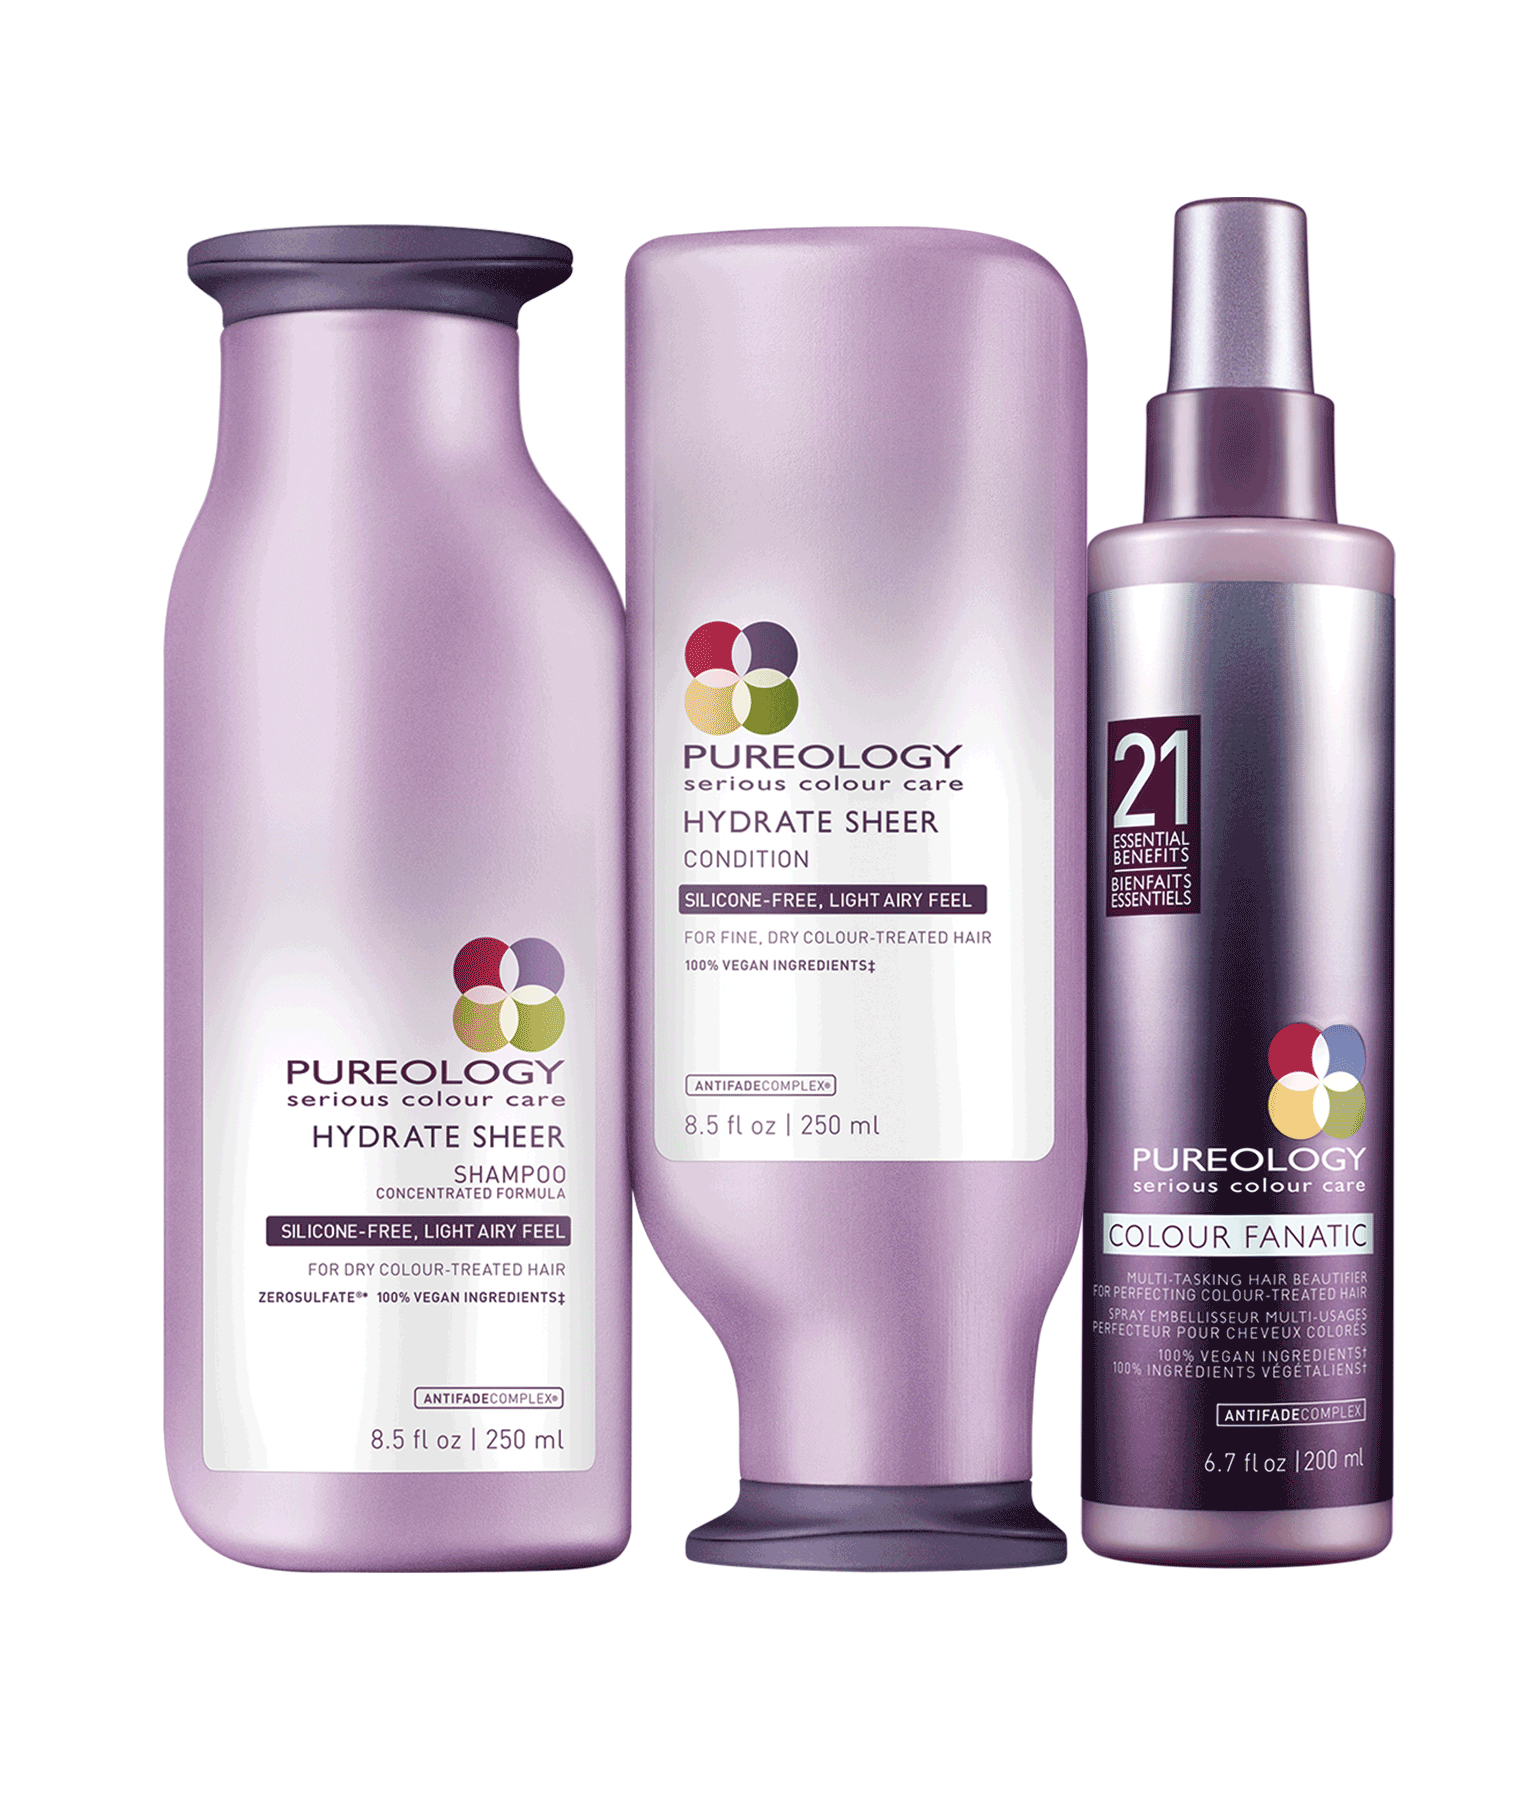 Lightweight Moisturizing Hair Care Product Set For Fine Dry Color